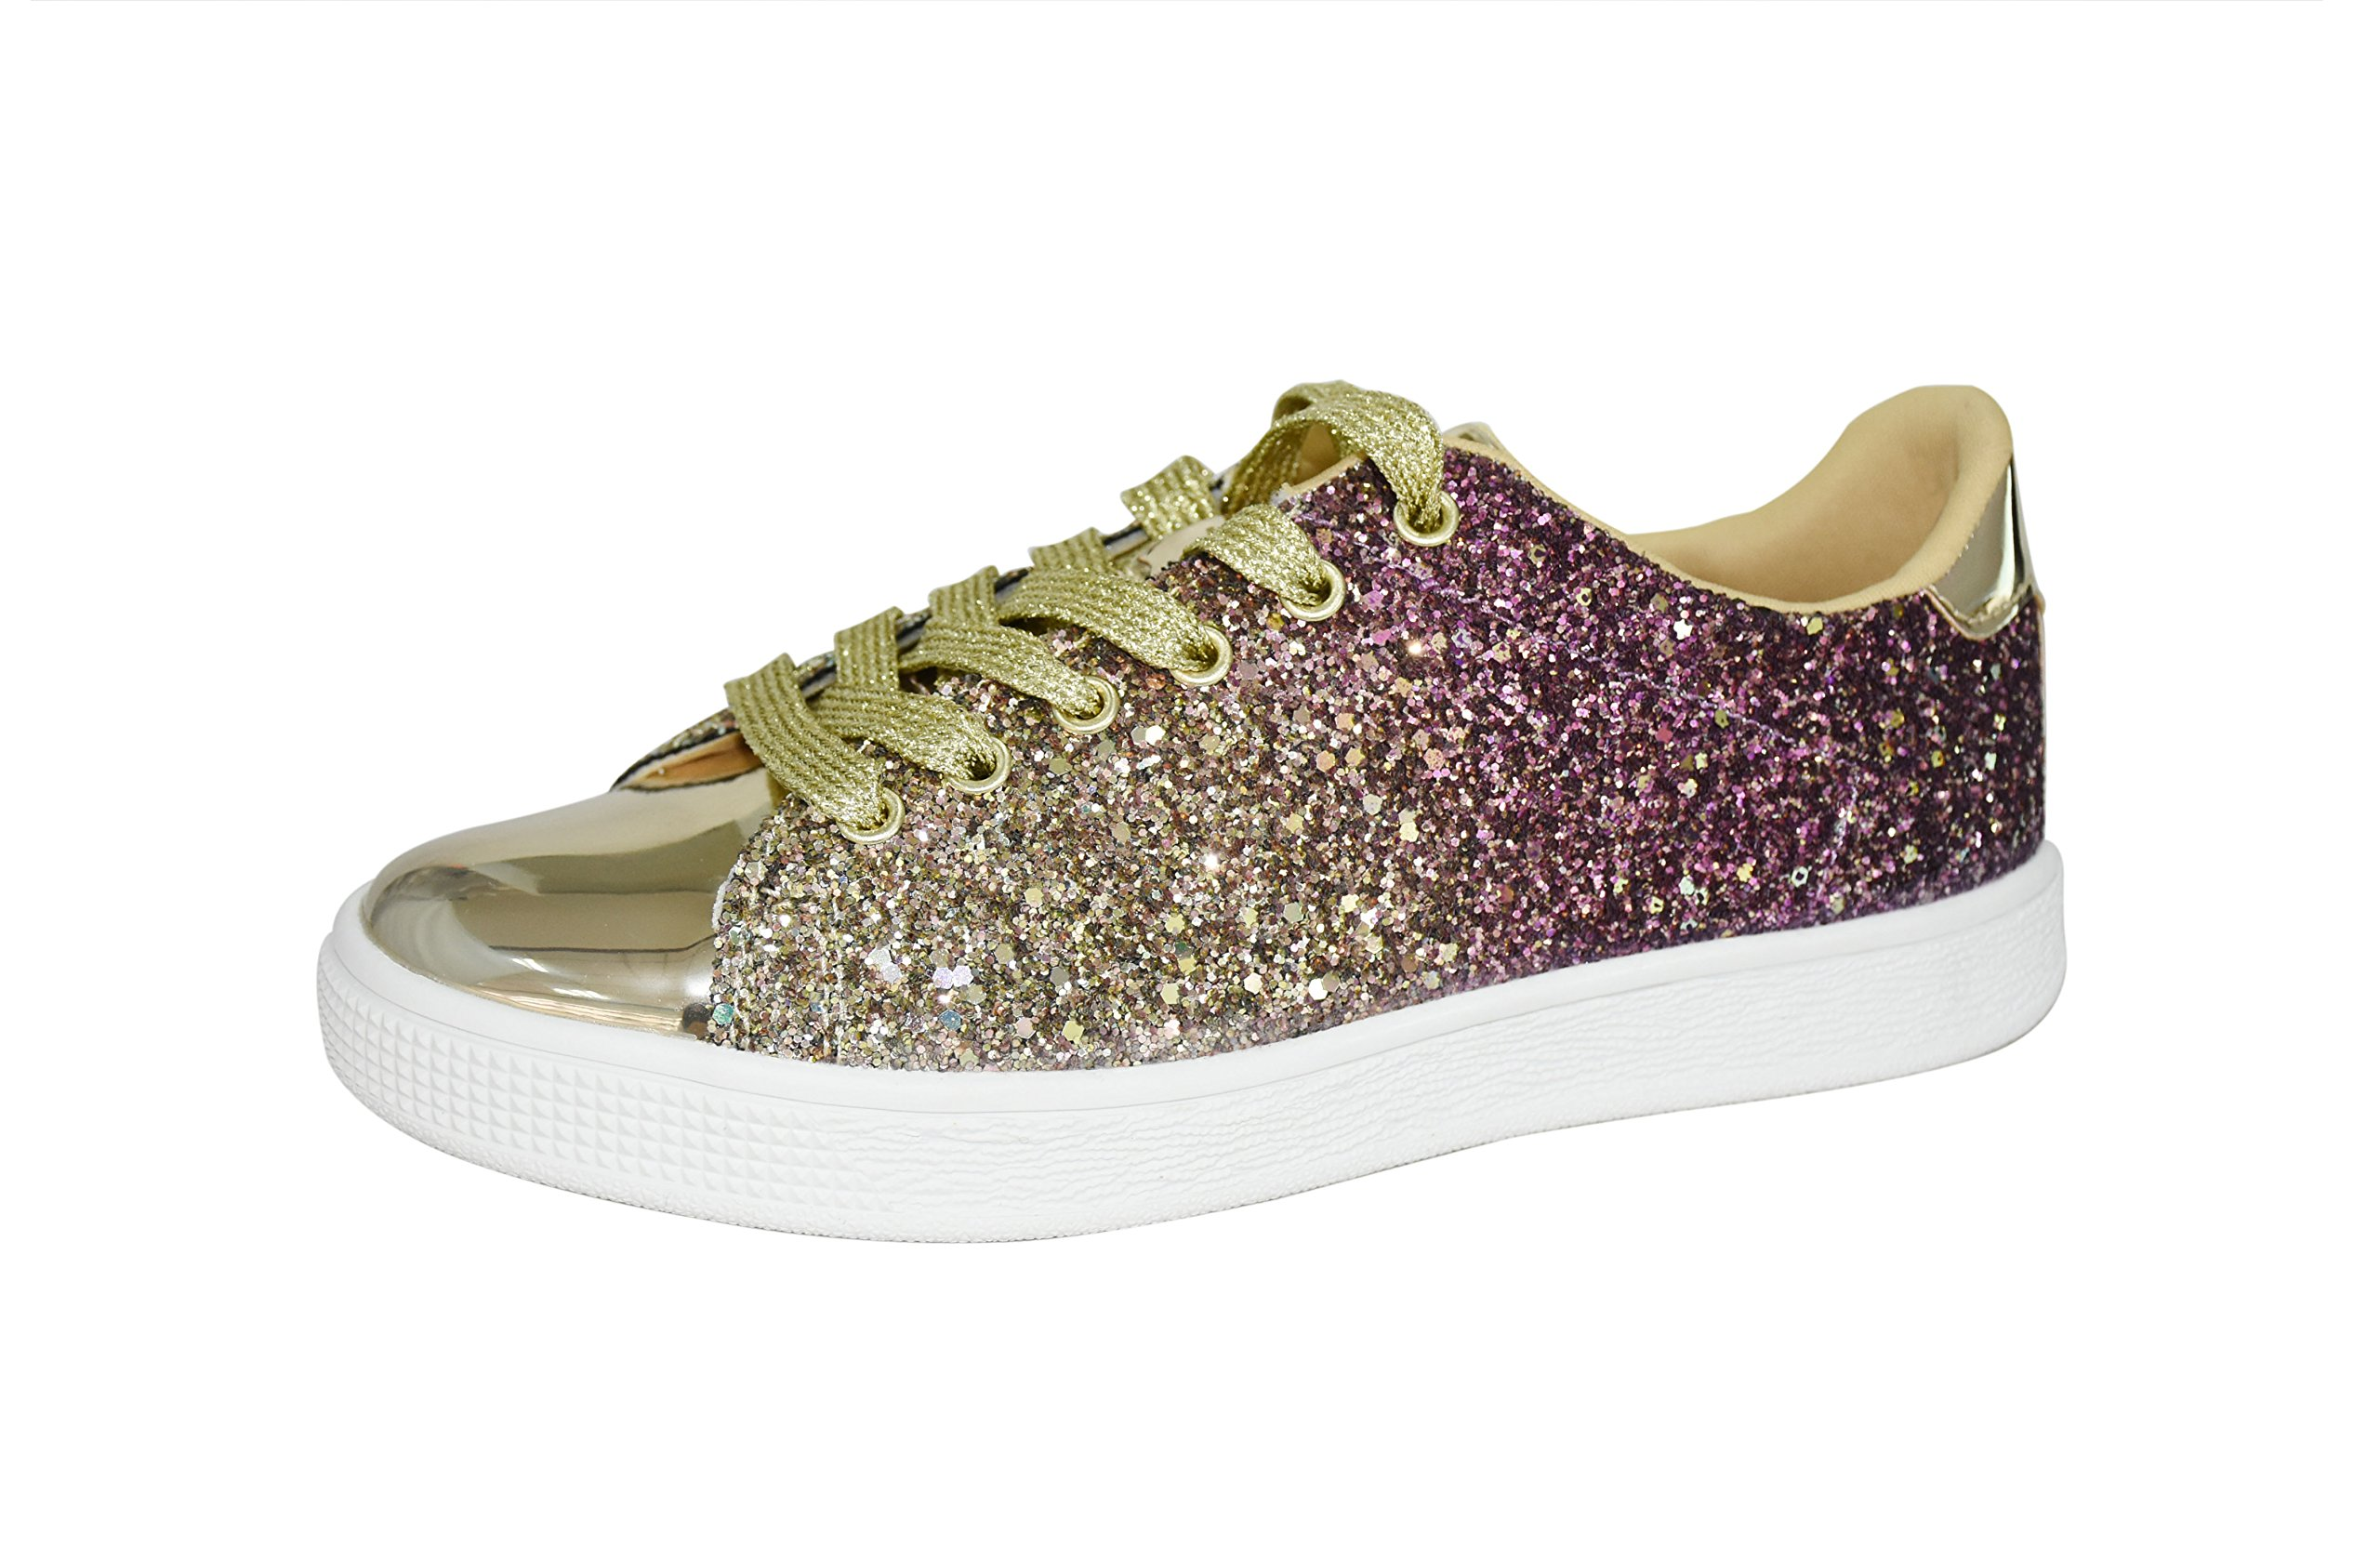 Lucky Step Glitter Sneakers Lace up | Fashion Sneakers | Sparkly Shoes for Women (8 B(M) US, Gold)